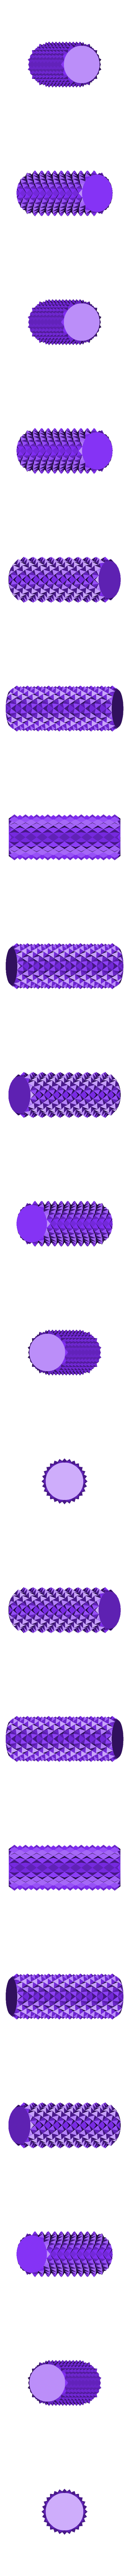 kv2_Example_02.stl Download free SCAD file Knurled Surface Library v2 • 3D printing design, Wachet